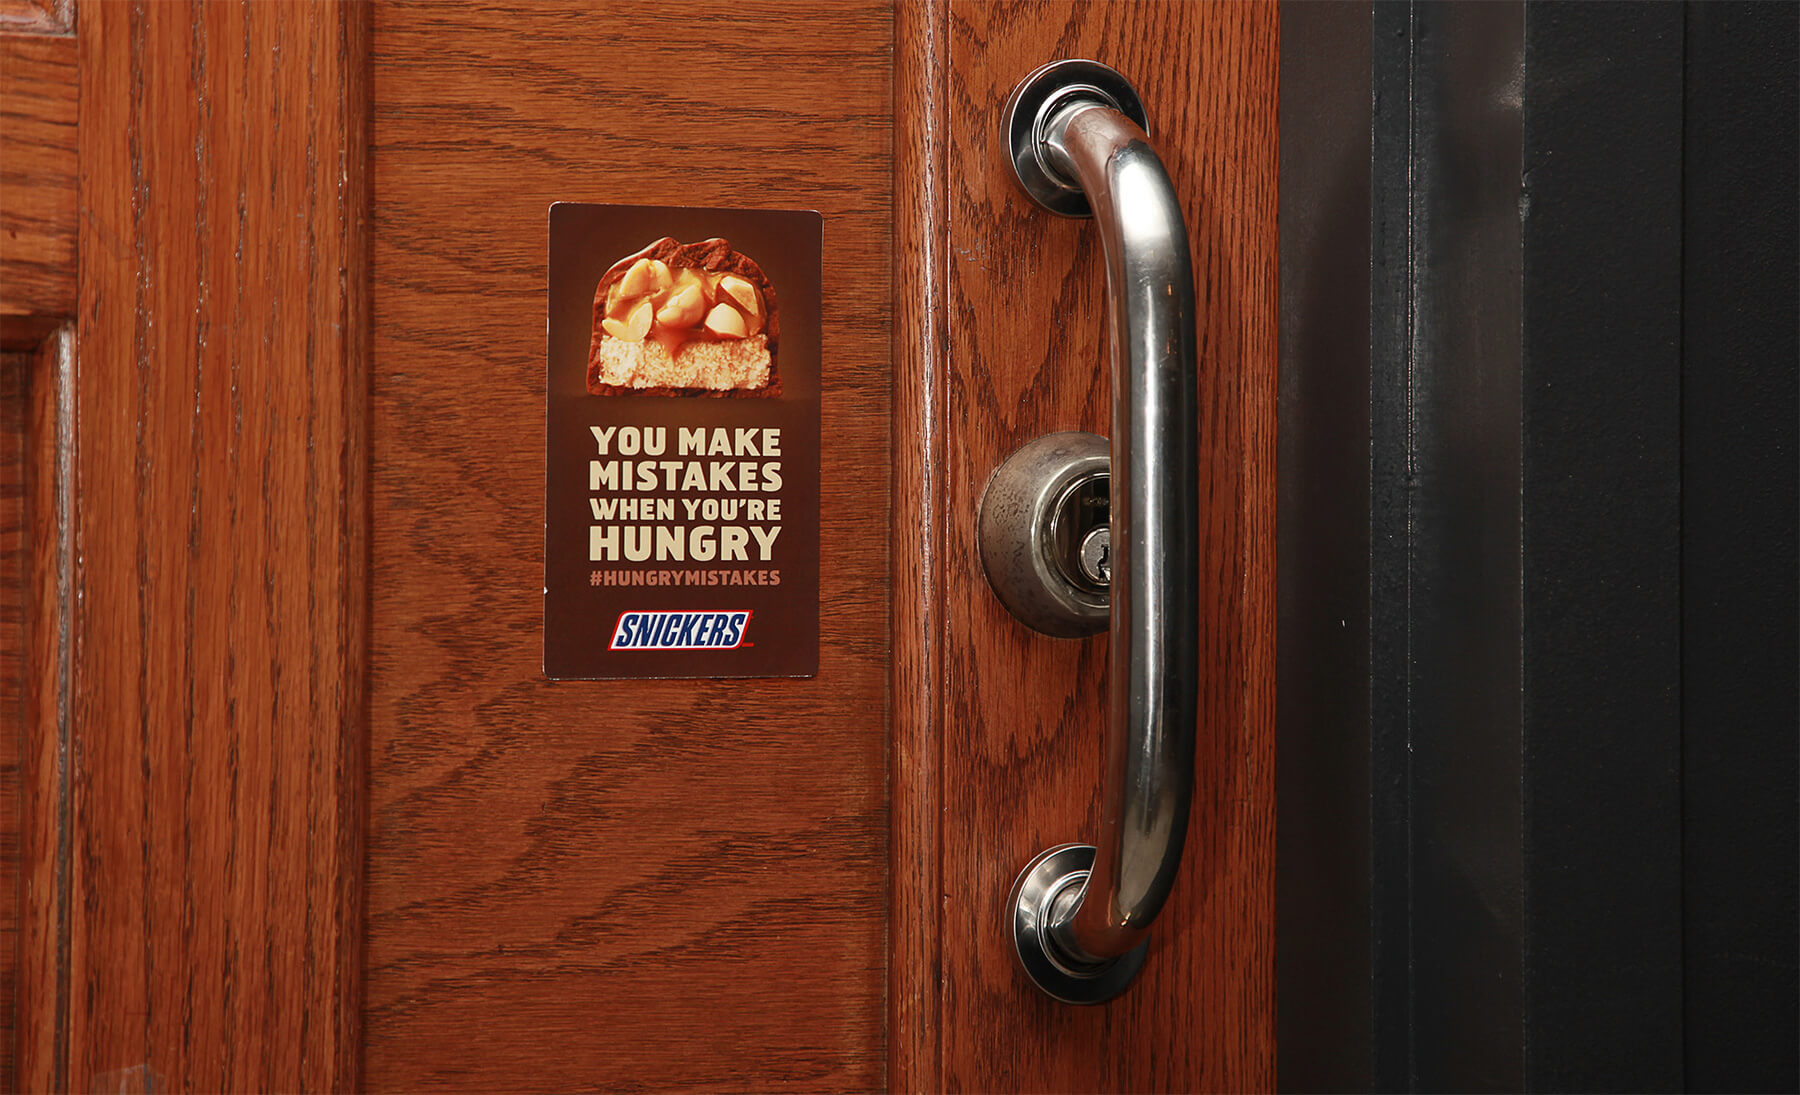 snickers-hungry-mistakes-outdoor-371826-adeevee